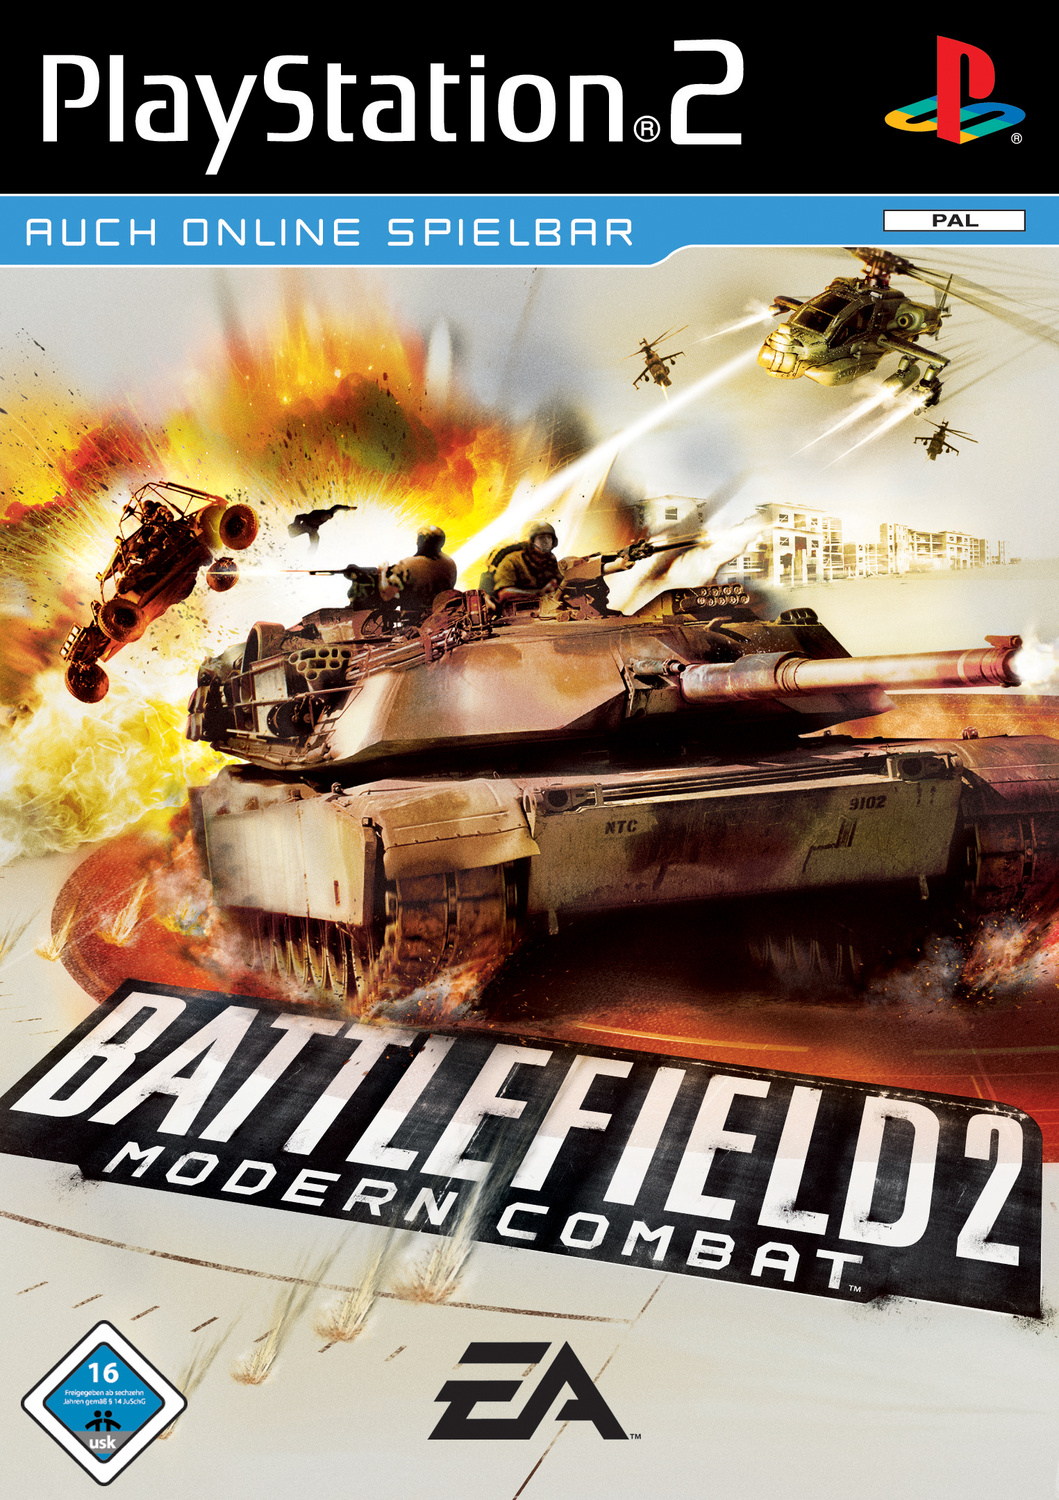 Battlefield 2: Modern Combat Most Wanted